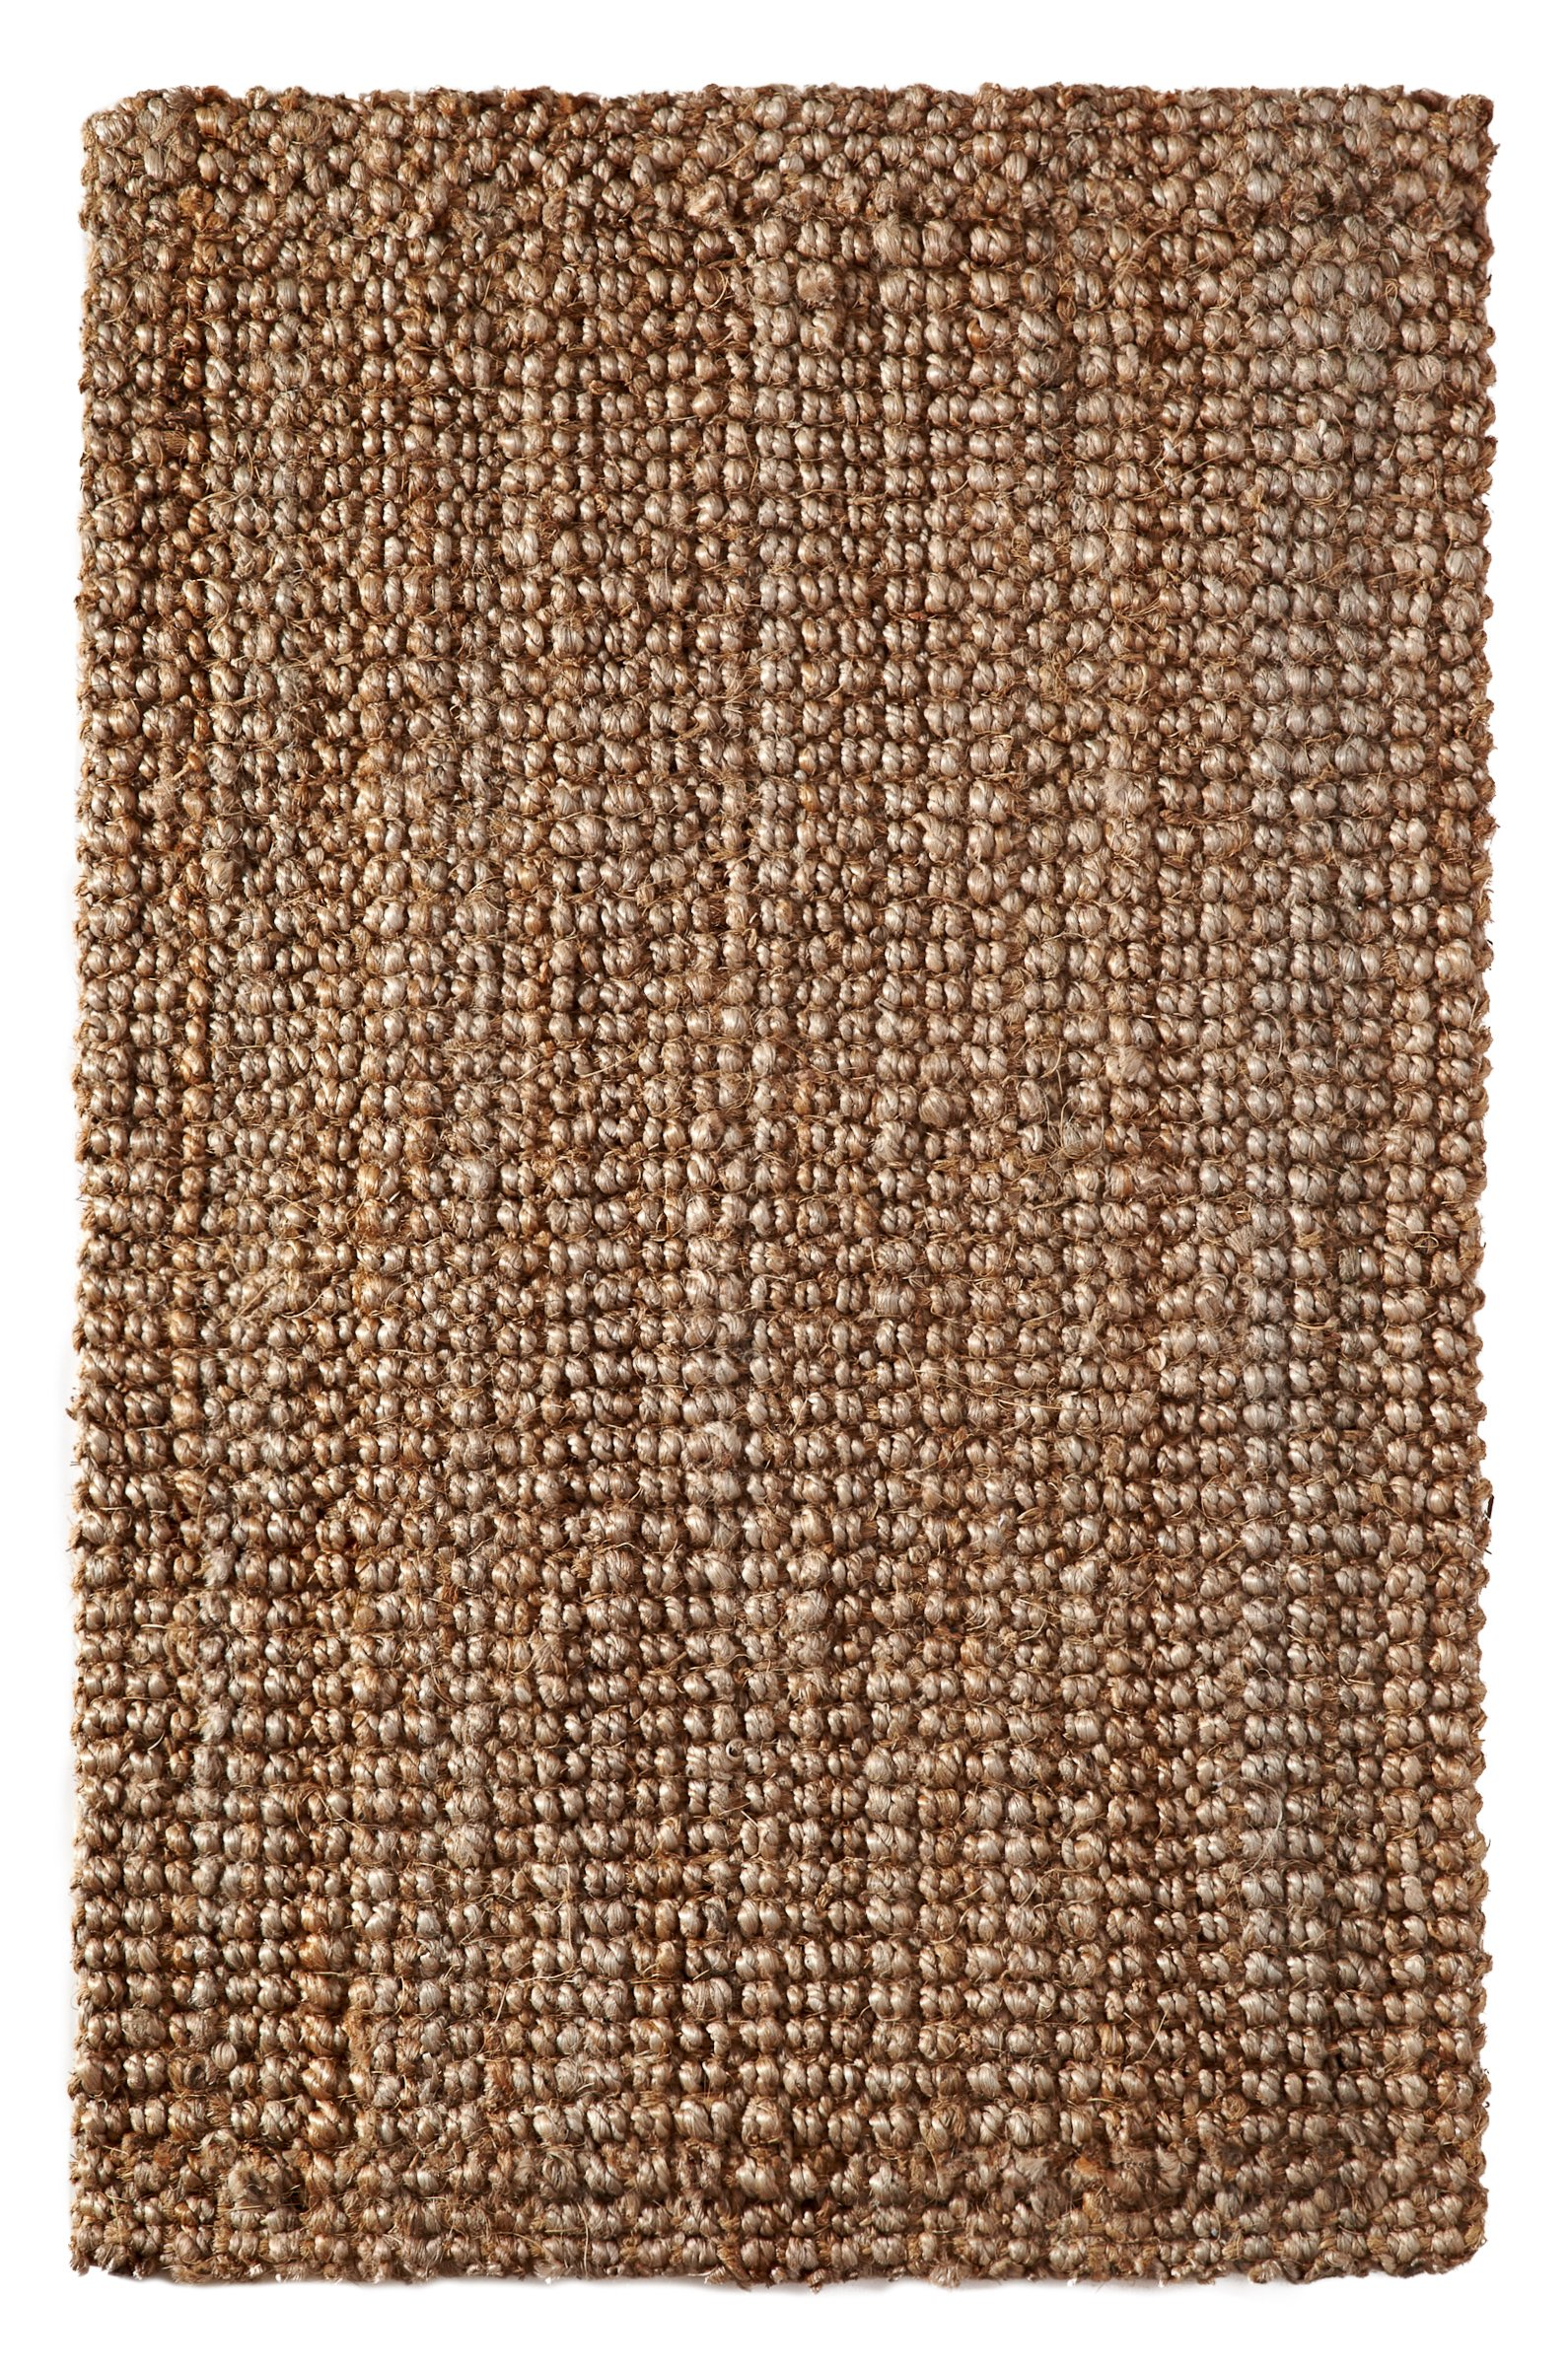 Iron Gate Handspun Jute Area Rug 4x6 Hand woven by Skilled Artisans, 100% Natural eco-friendly Jute yarns, Thick ribbed construction, Reversible for double the wear, Rug pad recommended by Iron Gate